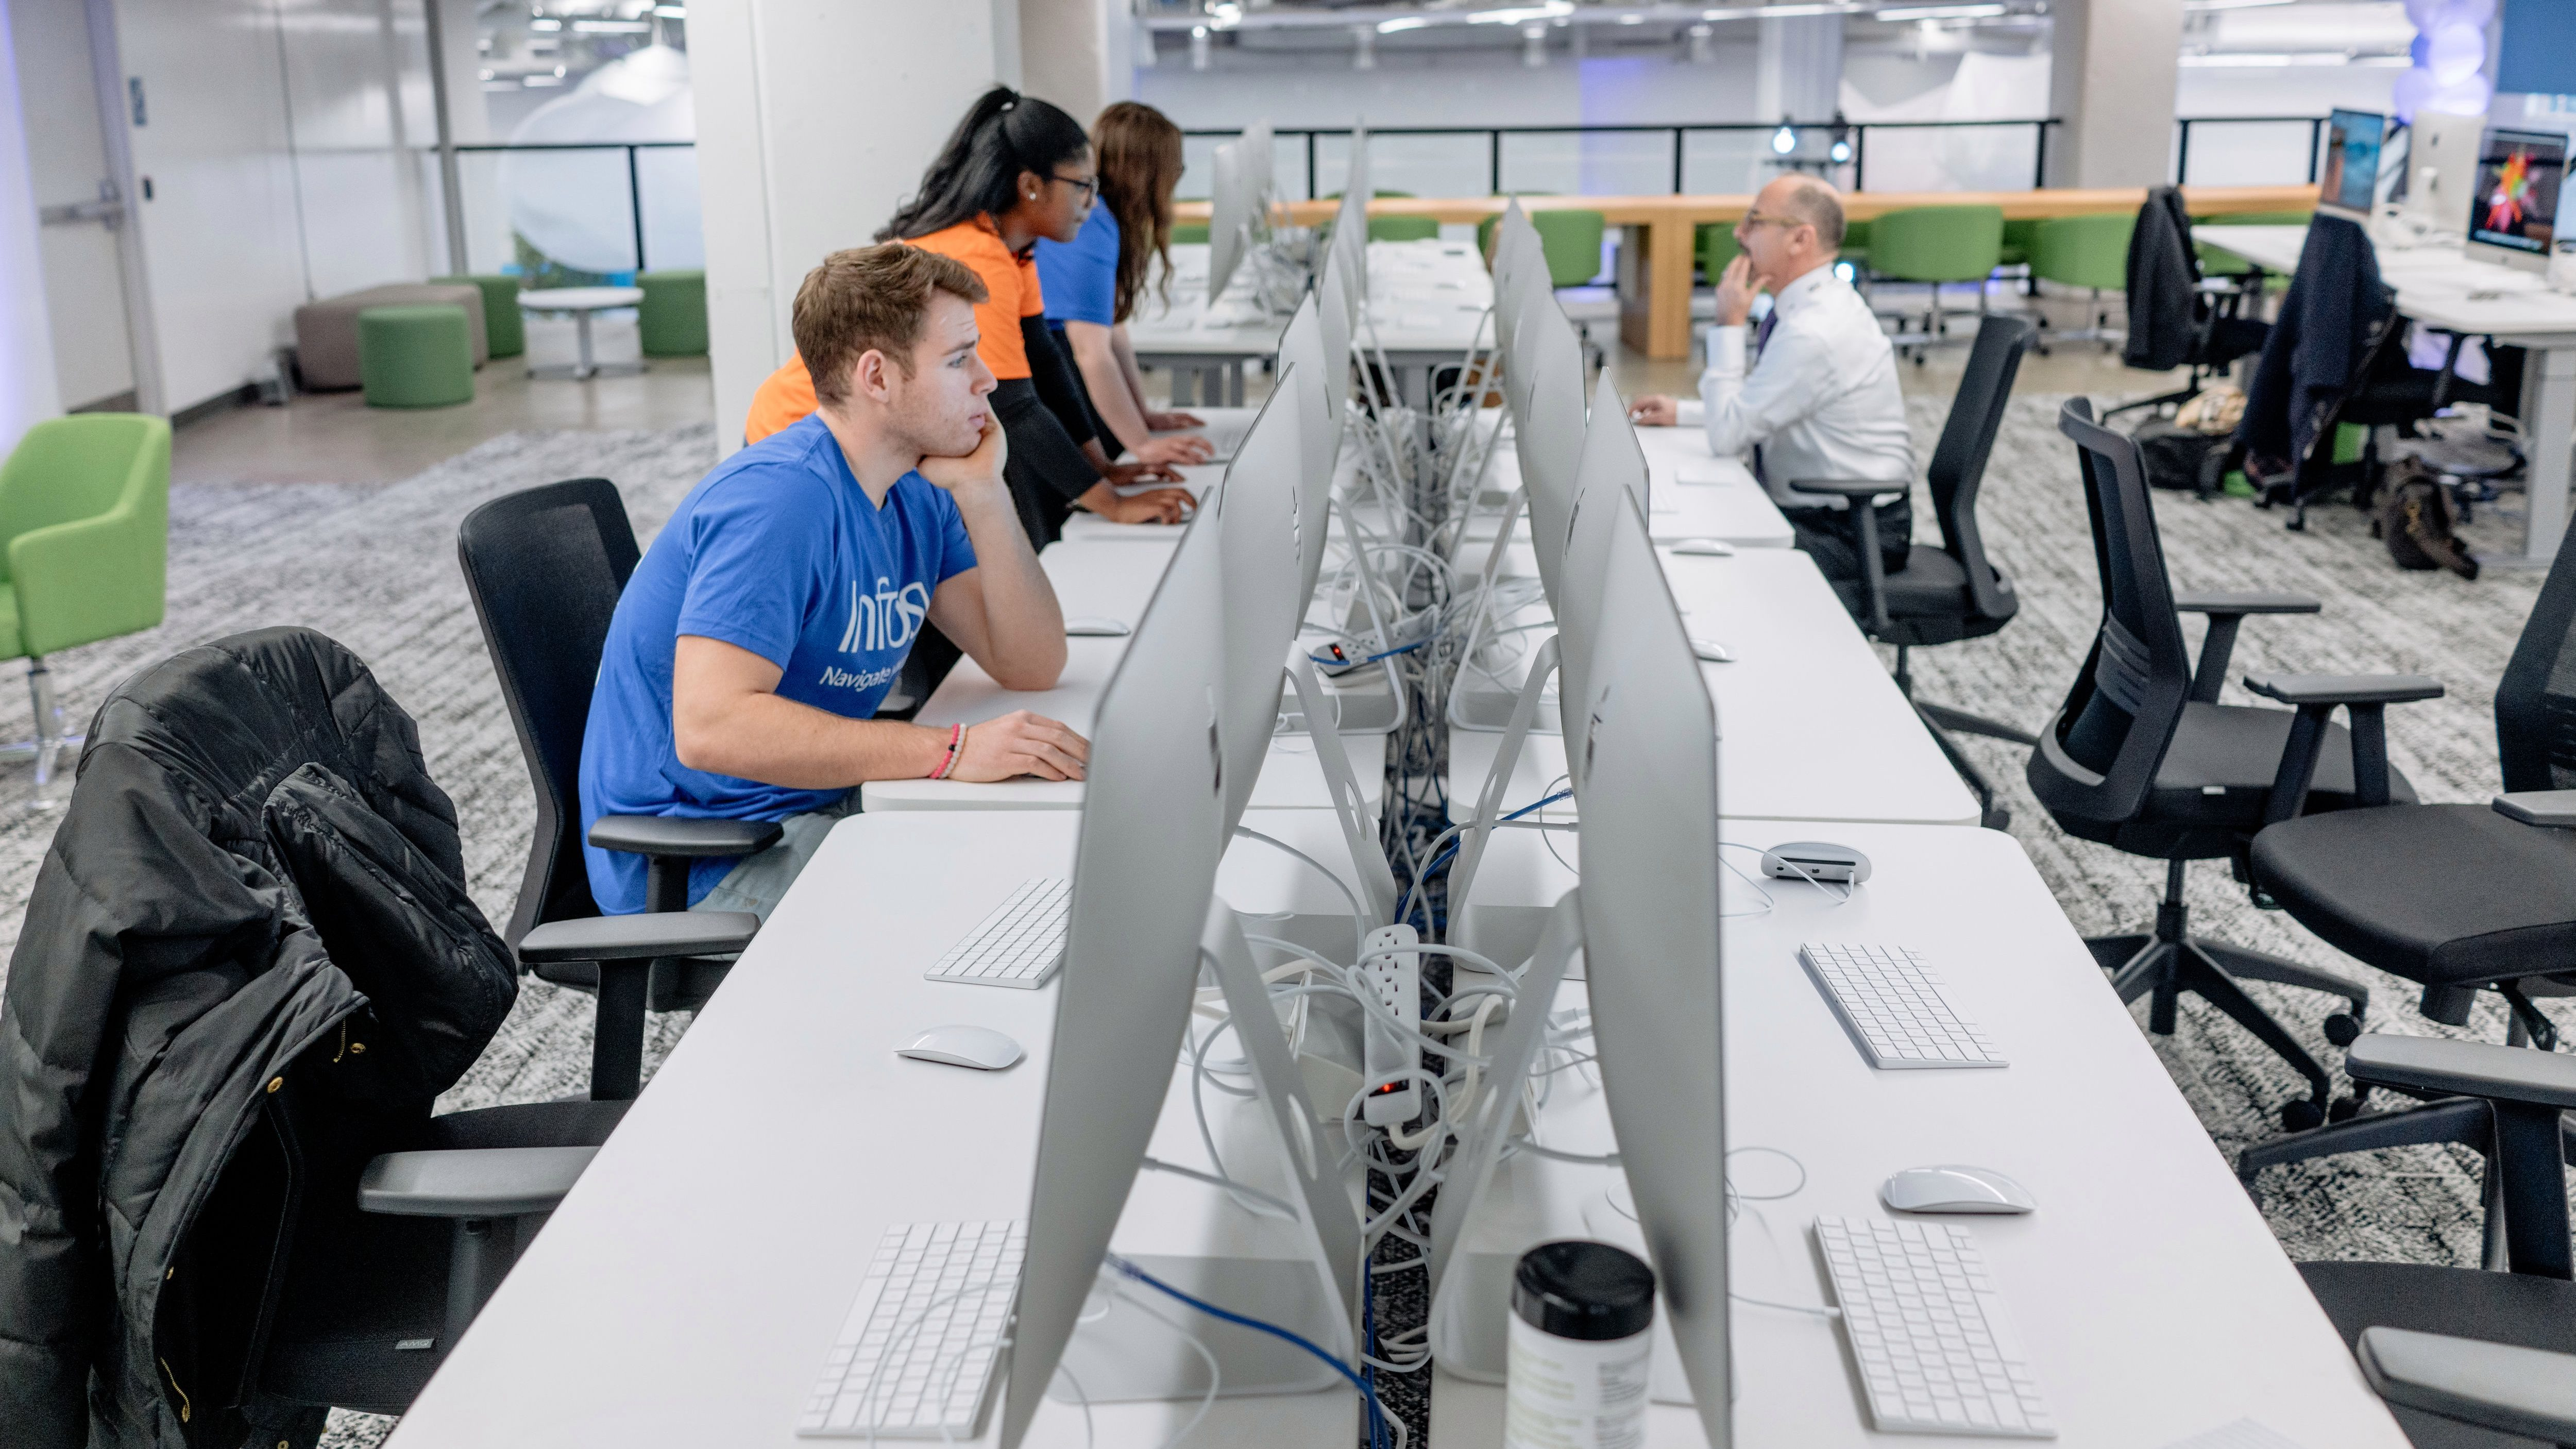 Infosys, on a 10,000-job hiring sprint in the US, is 75% of the way there